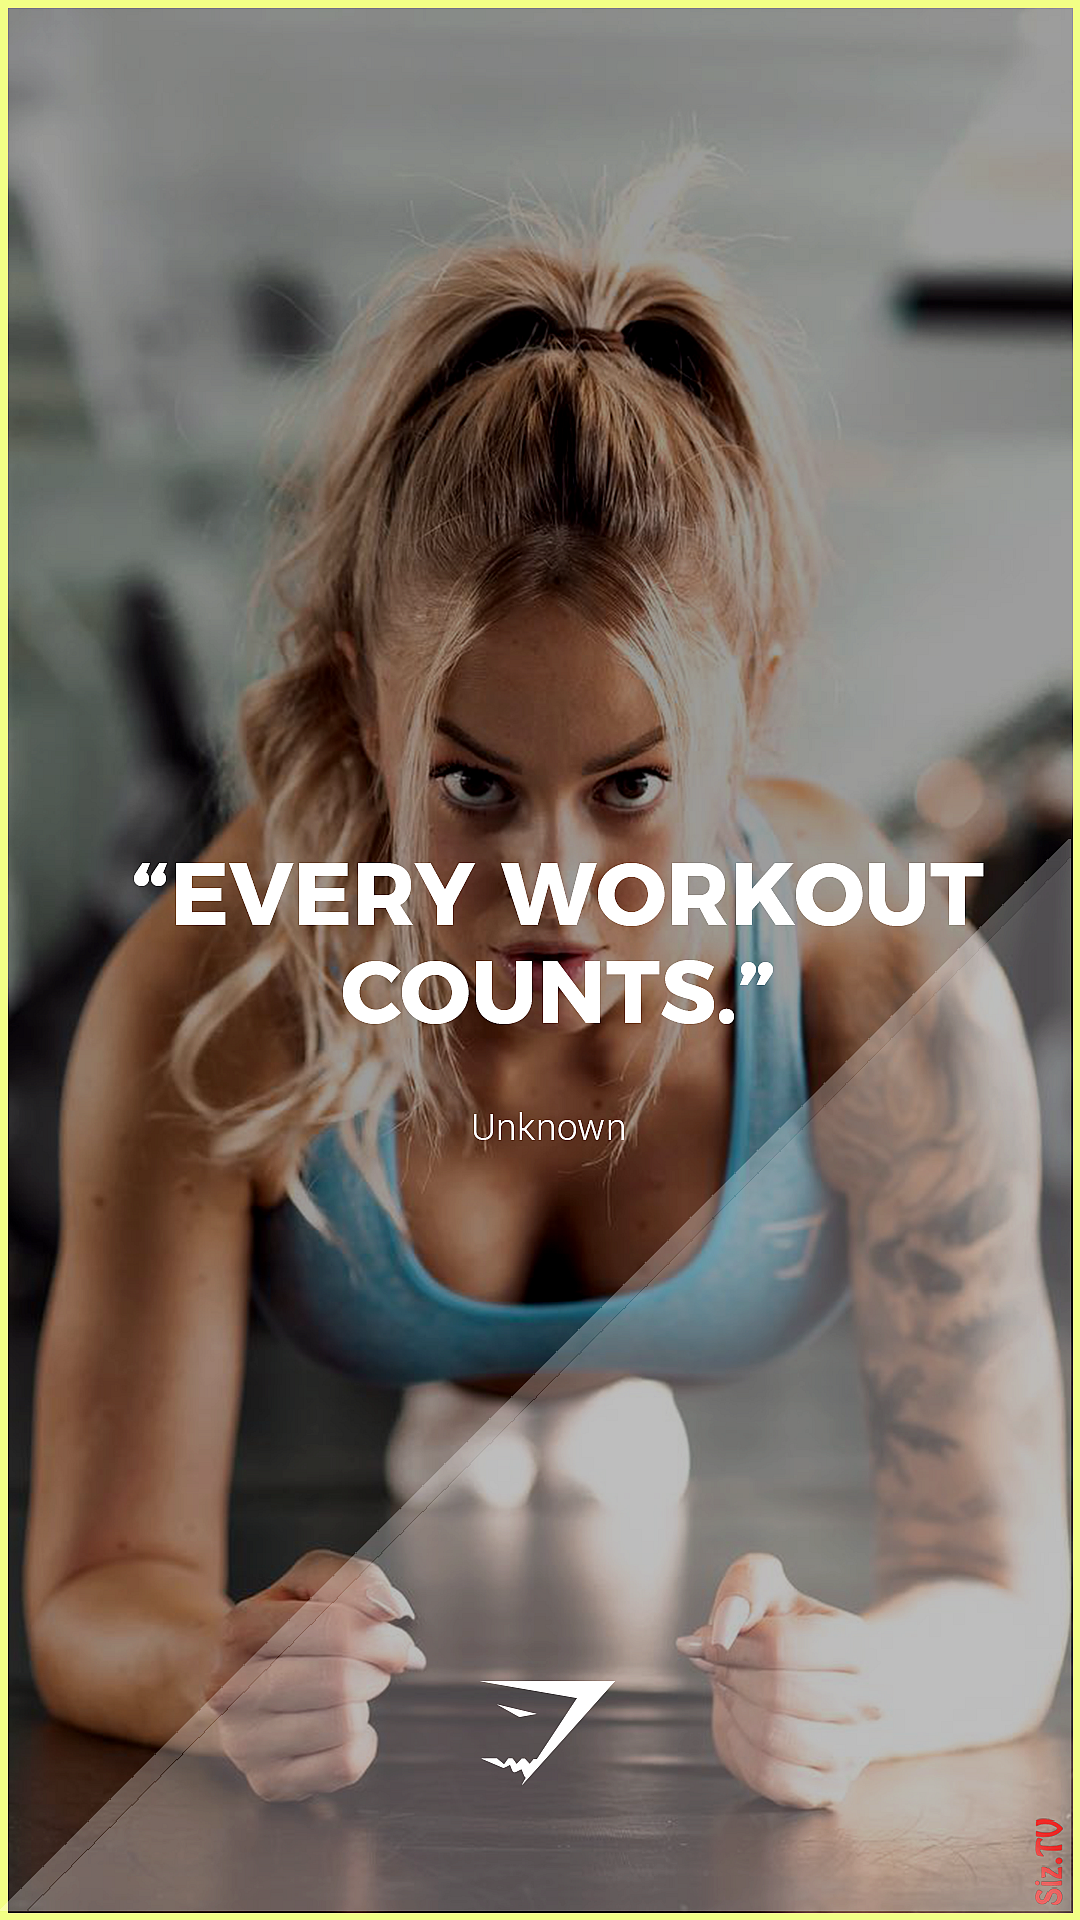 Every workout counts  Gymshark Gymshark Quotes Motivational Inspiration Motivate Phrases Inspire Fit...